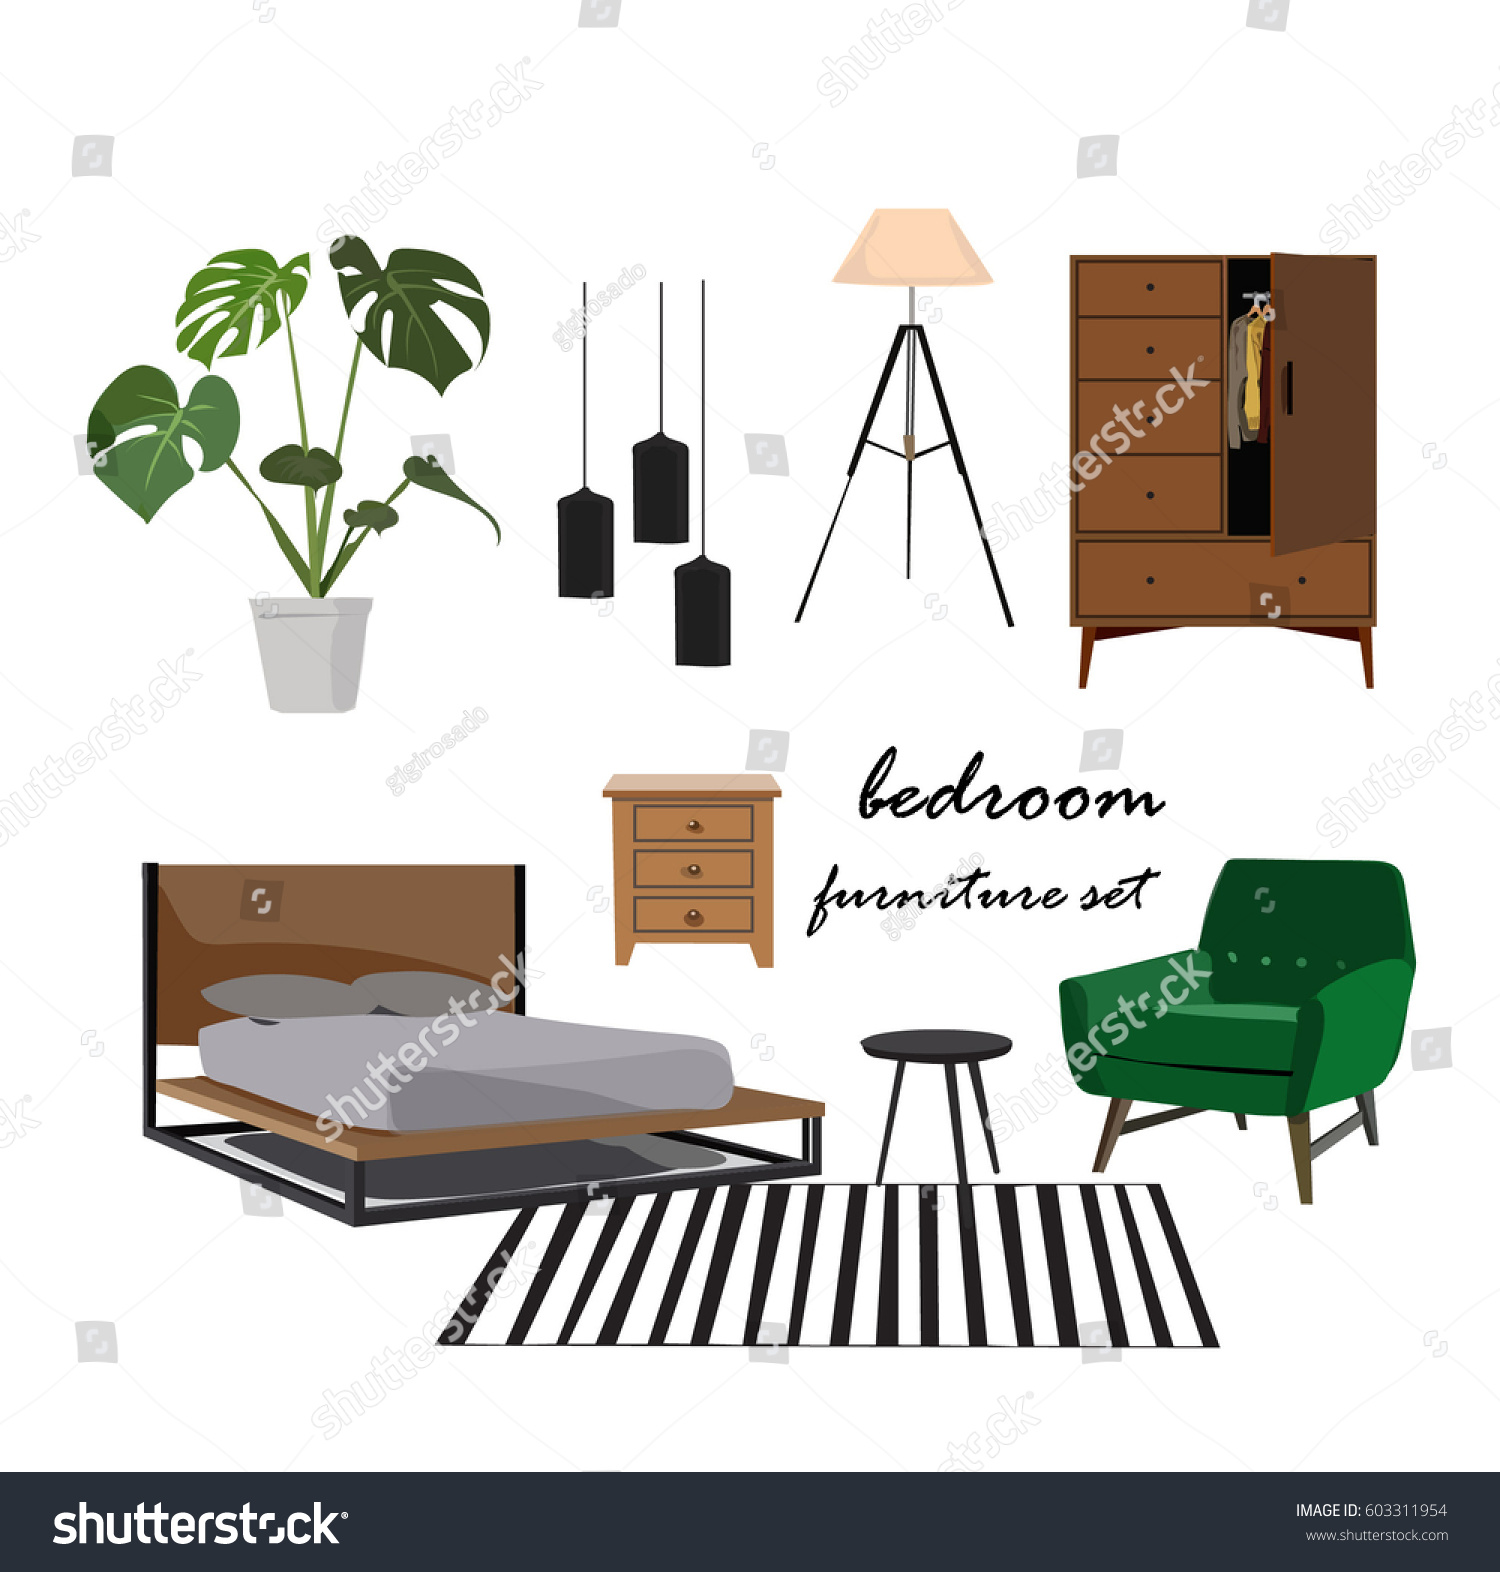 bedroom furniture set  Interior design home elements collection mood board   designer  danish. Bedroom Furniture Set Interior Design Home Stock Vector 603311954